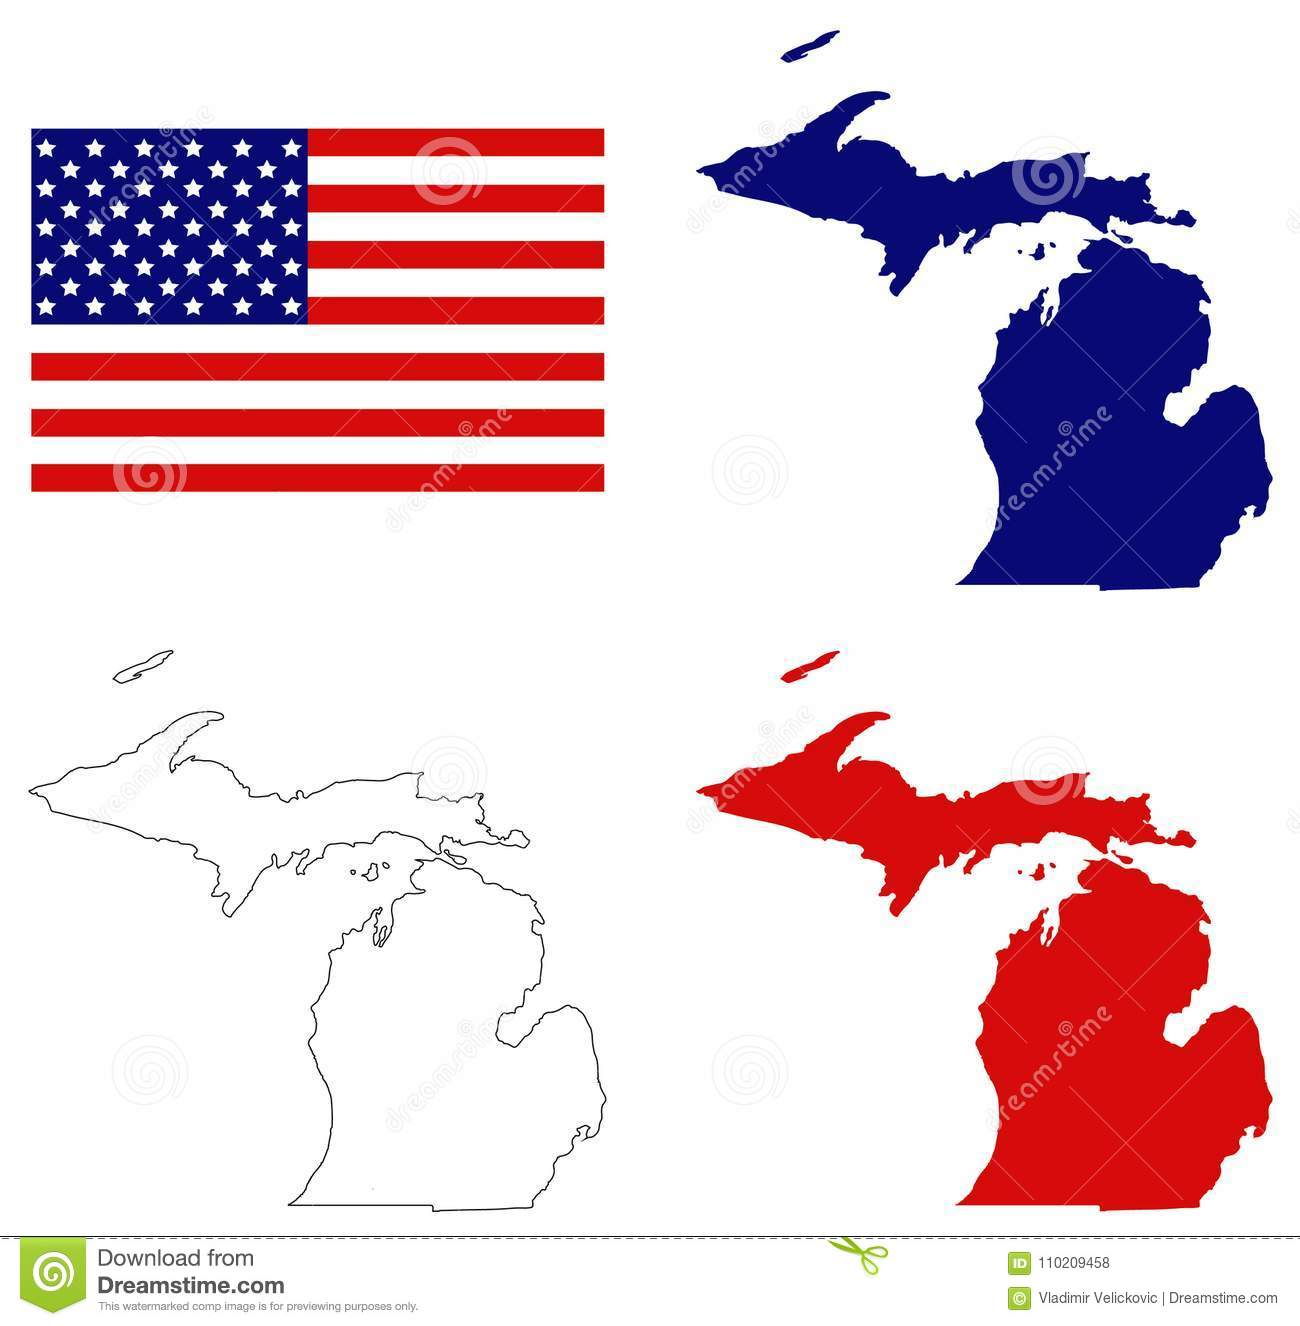 Map Of Usa Great Lakes.Michigan Map With Usa Flag State In The Great Lakes And Midwestern